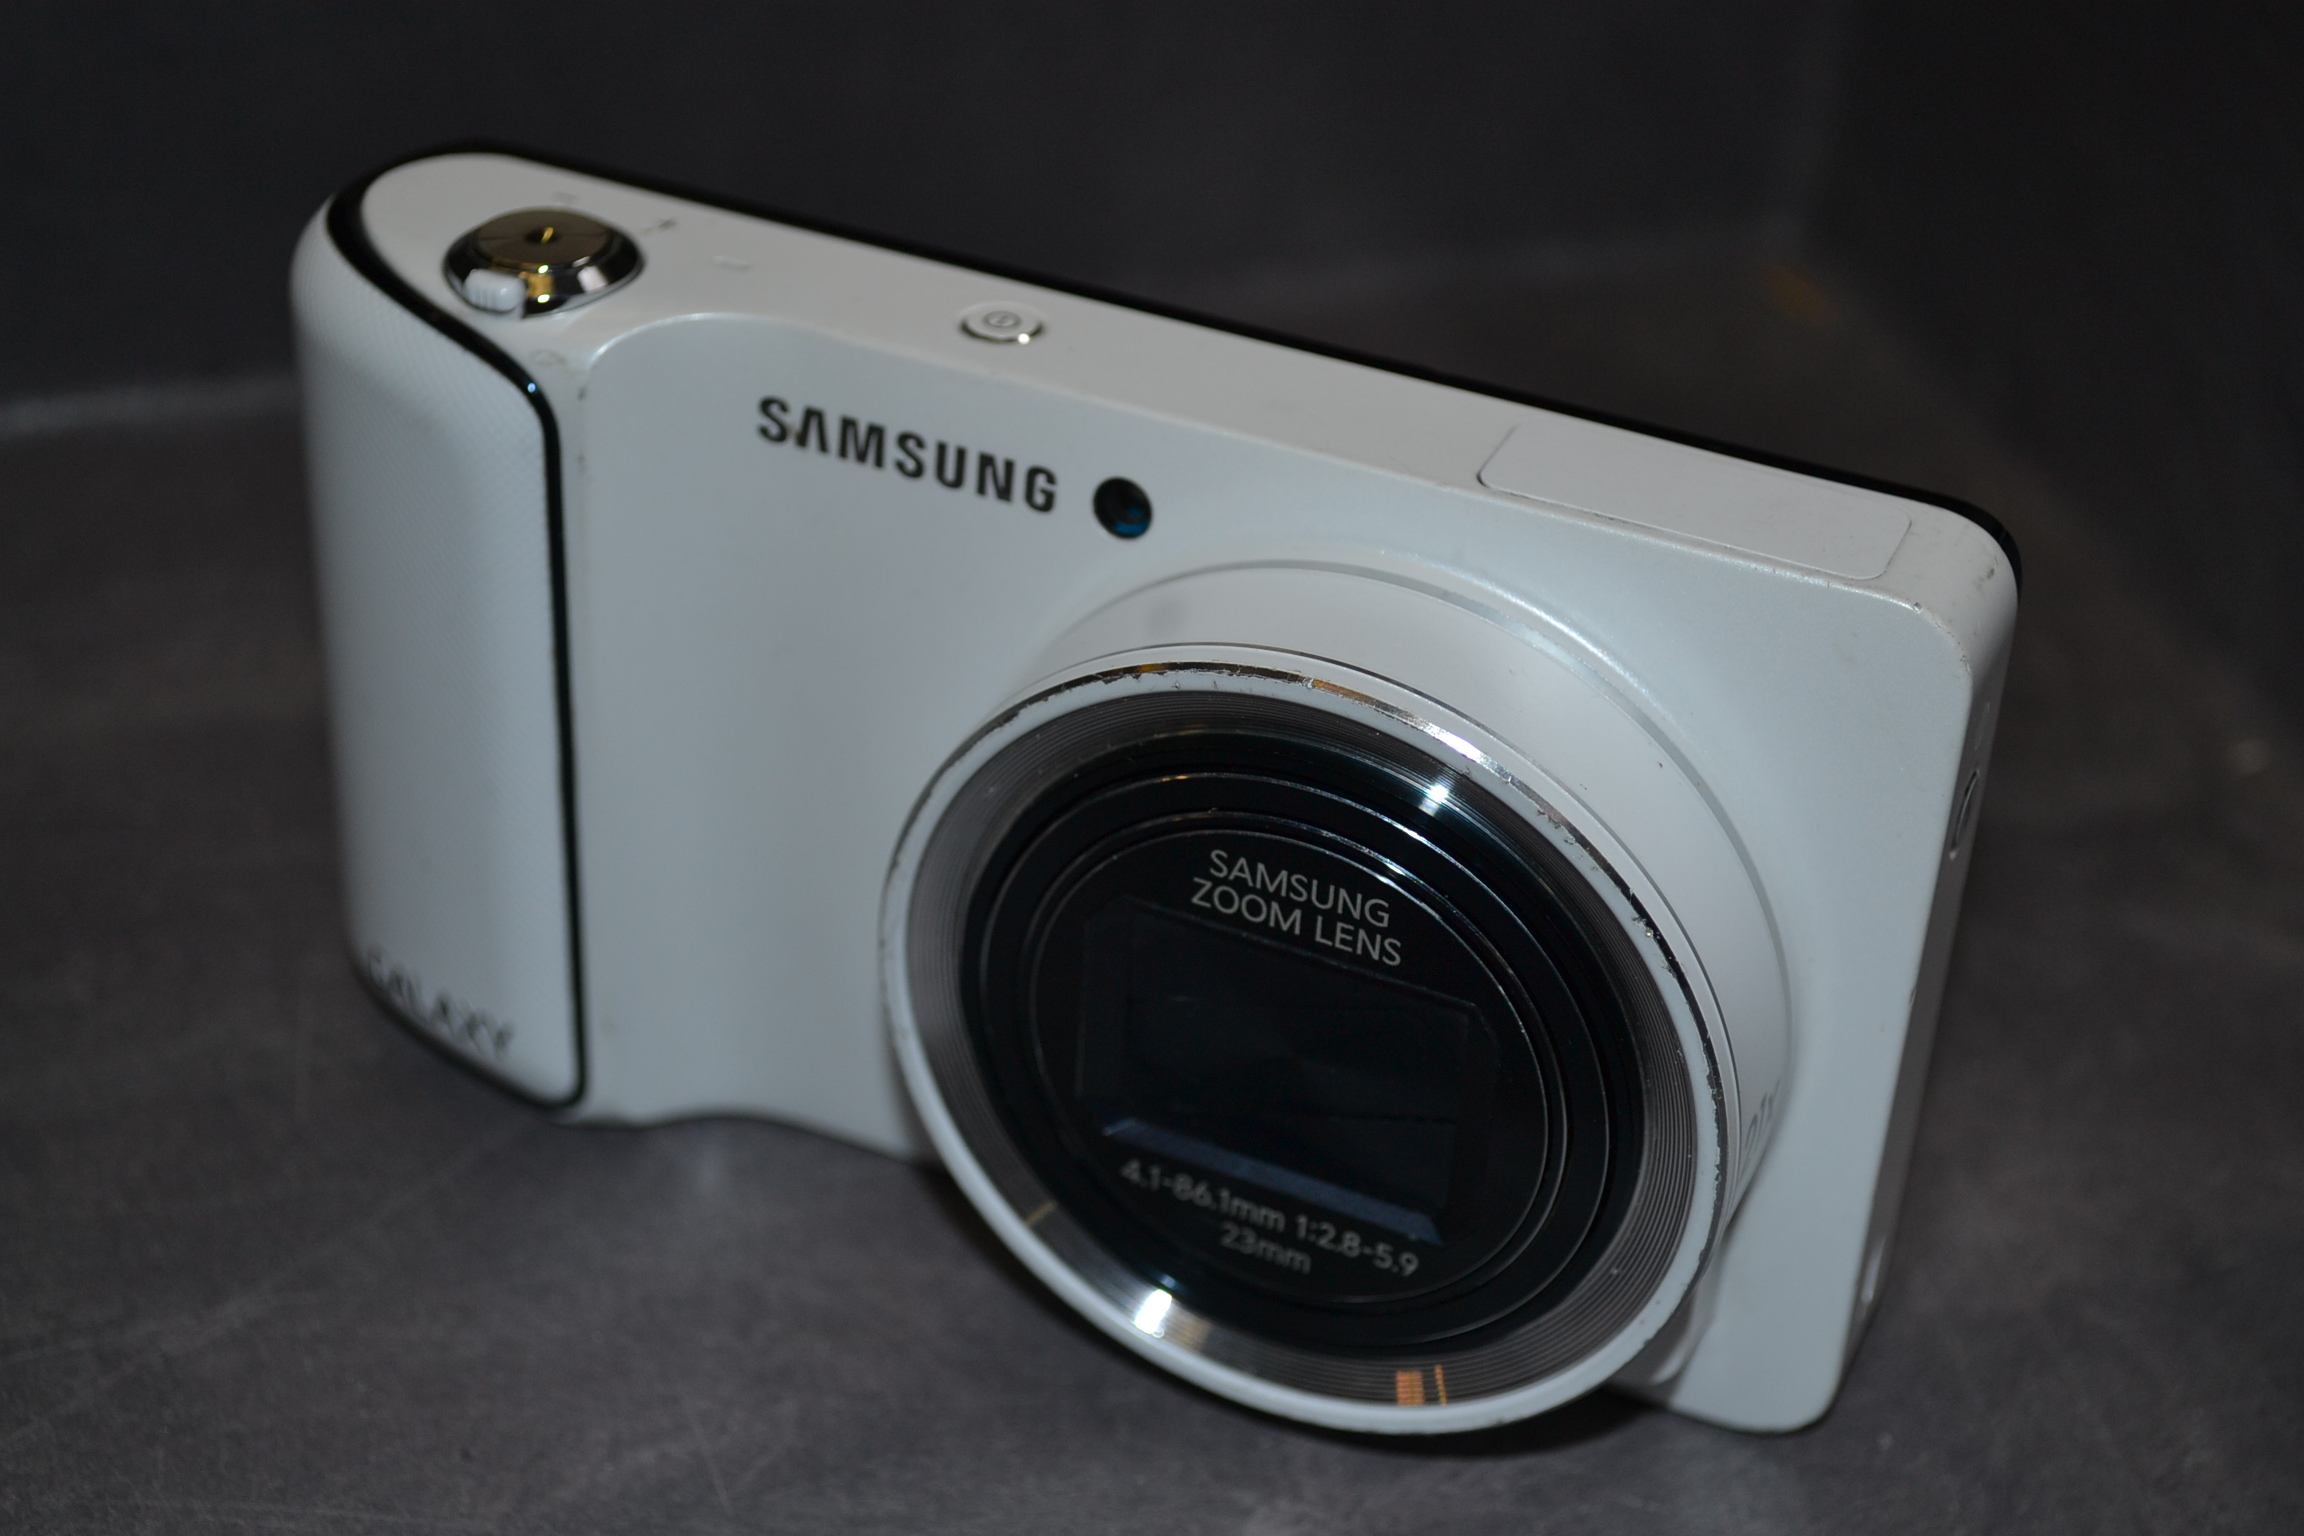 Samsung Galaxy Camera With Android Jelly Bean V4.1.2 Os 16 ...